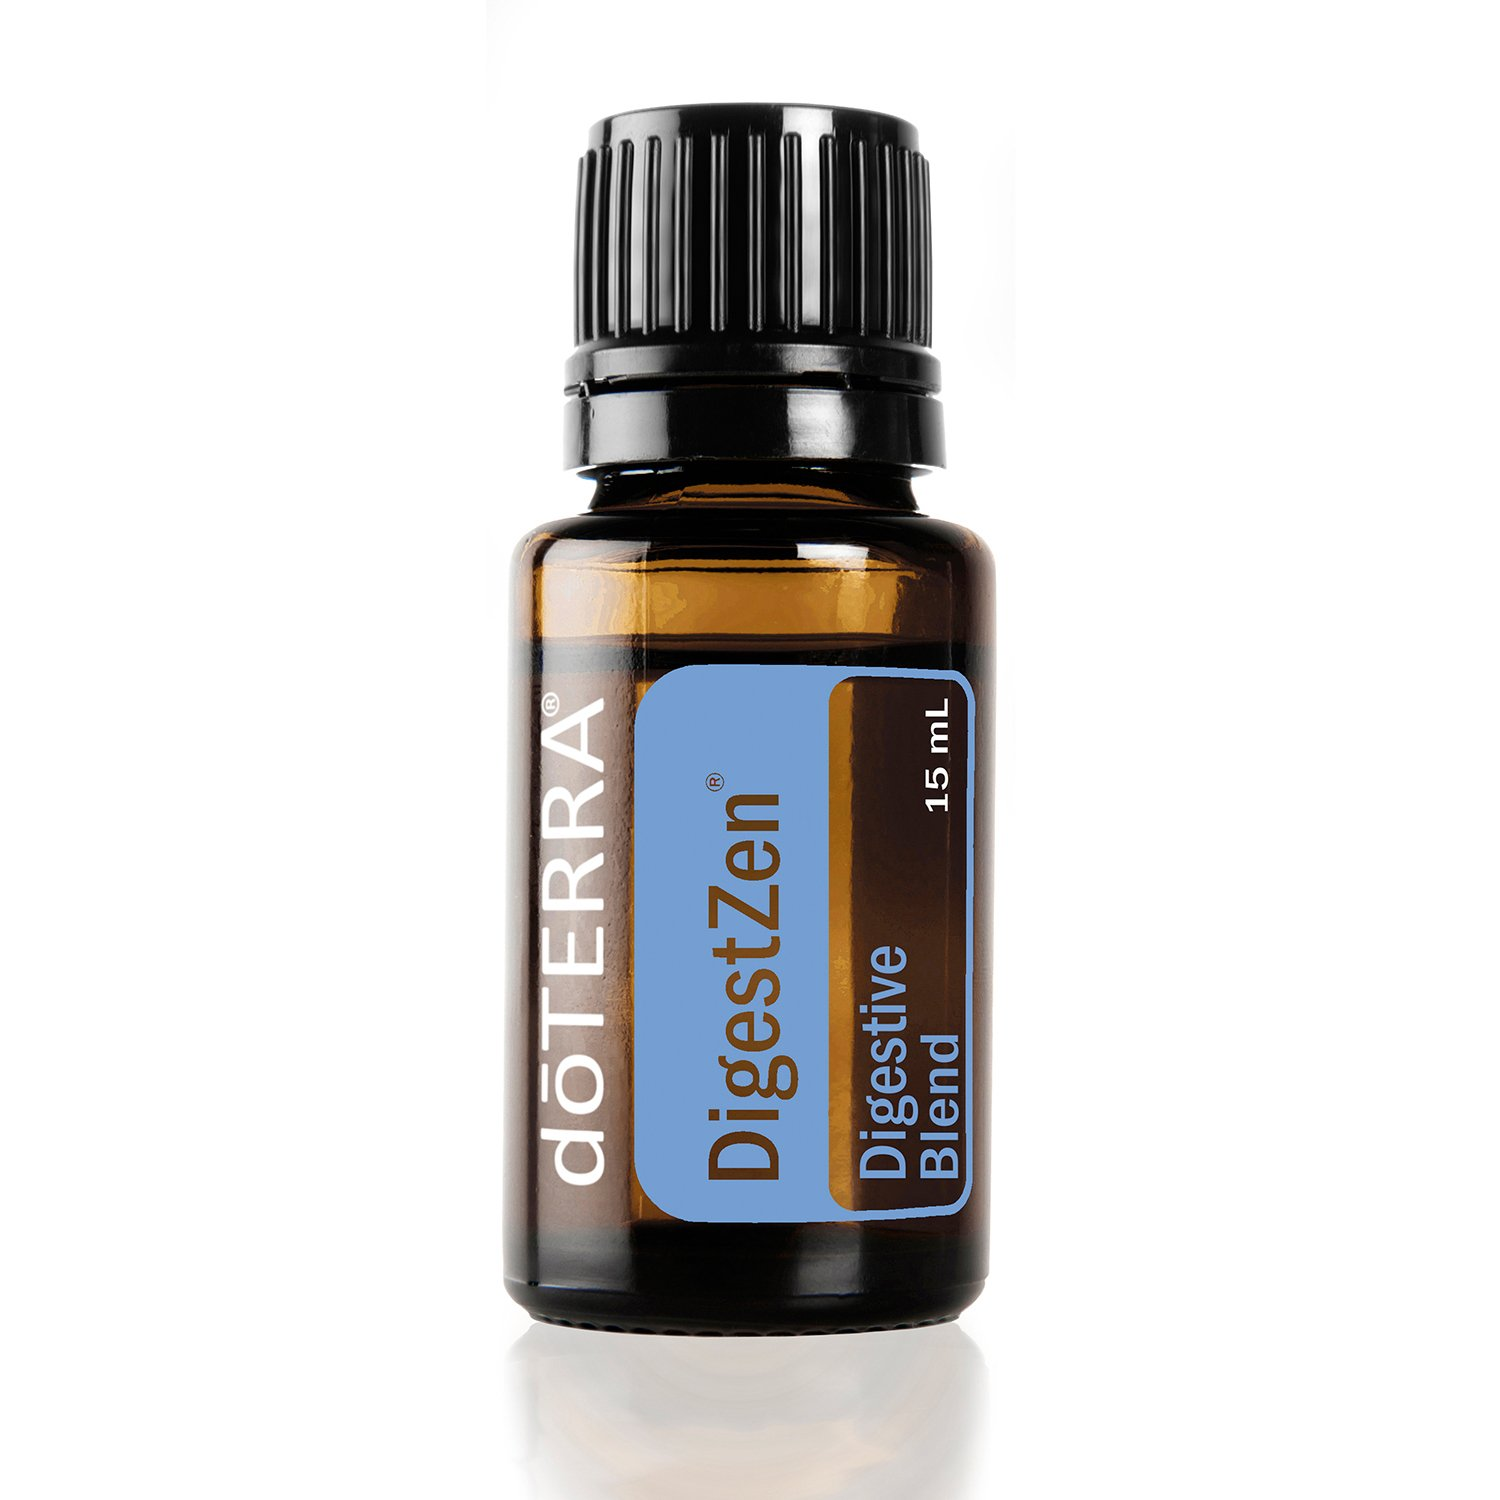 doTERRA - DigestZen Essential Oil Digestive Blend - Supports Healthy Digestion, May Help Reduce Bloating, Gas, and Occasional Indigestion; for Diffusion, Internal, or Topical Use - 15 mL by DoTerra